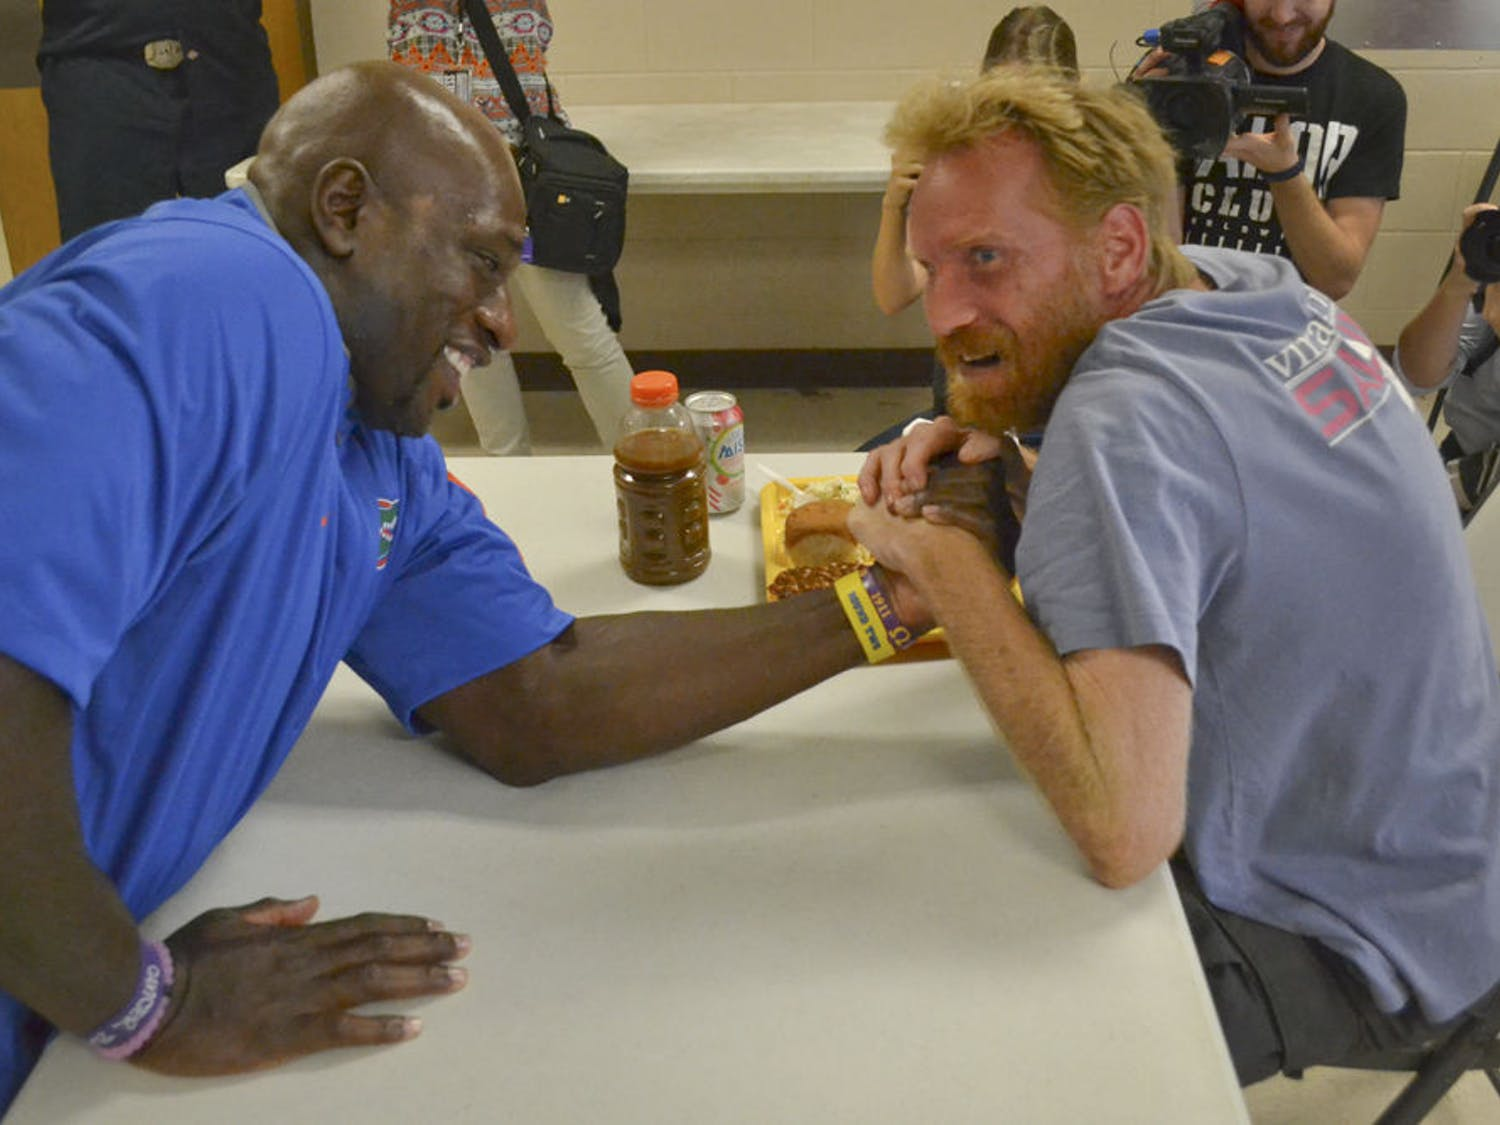 """Thaddeus Bullard (left), also known as WWE wrestler Titus O'Neil, arm wrestles Mike Grace, a 38-year-old homeless veteran, at St. Francis House on Oct. 2, 2015. Grace challenged Bullard to the match and won. """"I imagine he could pick me up and throw me across the room,"""" Grace said about Bullard."""